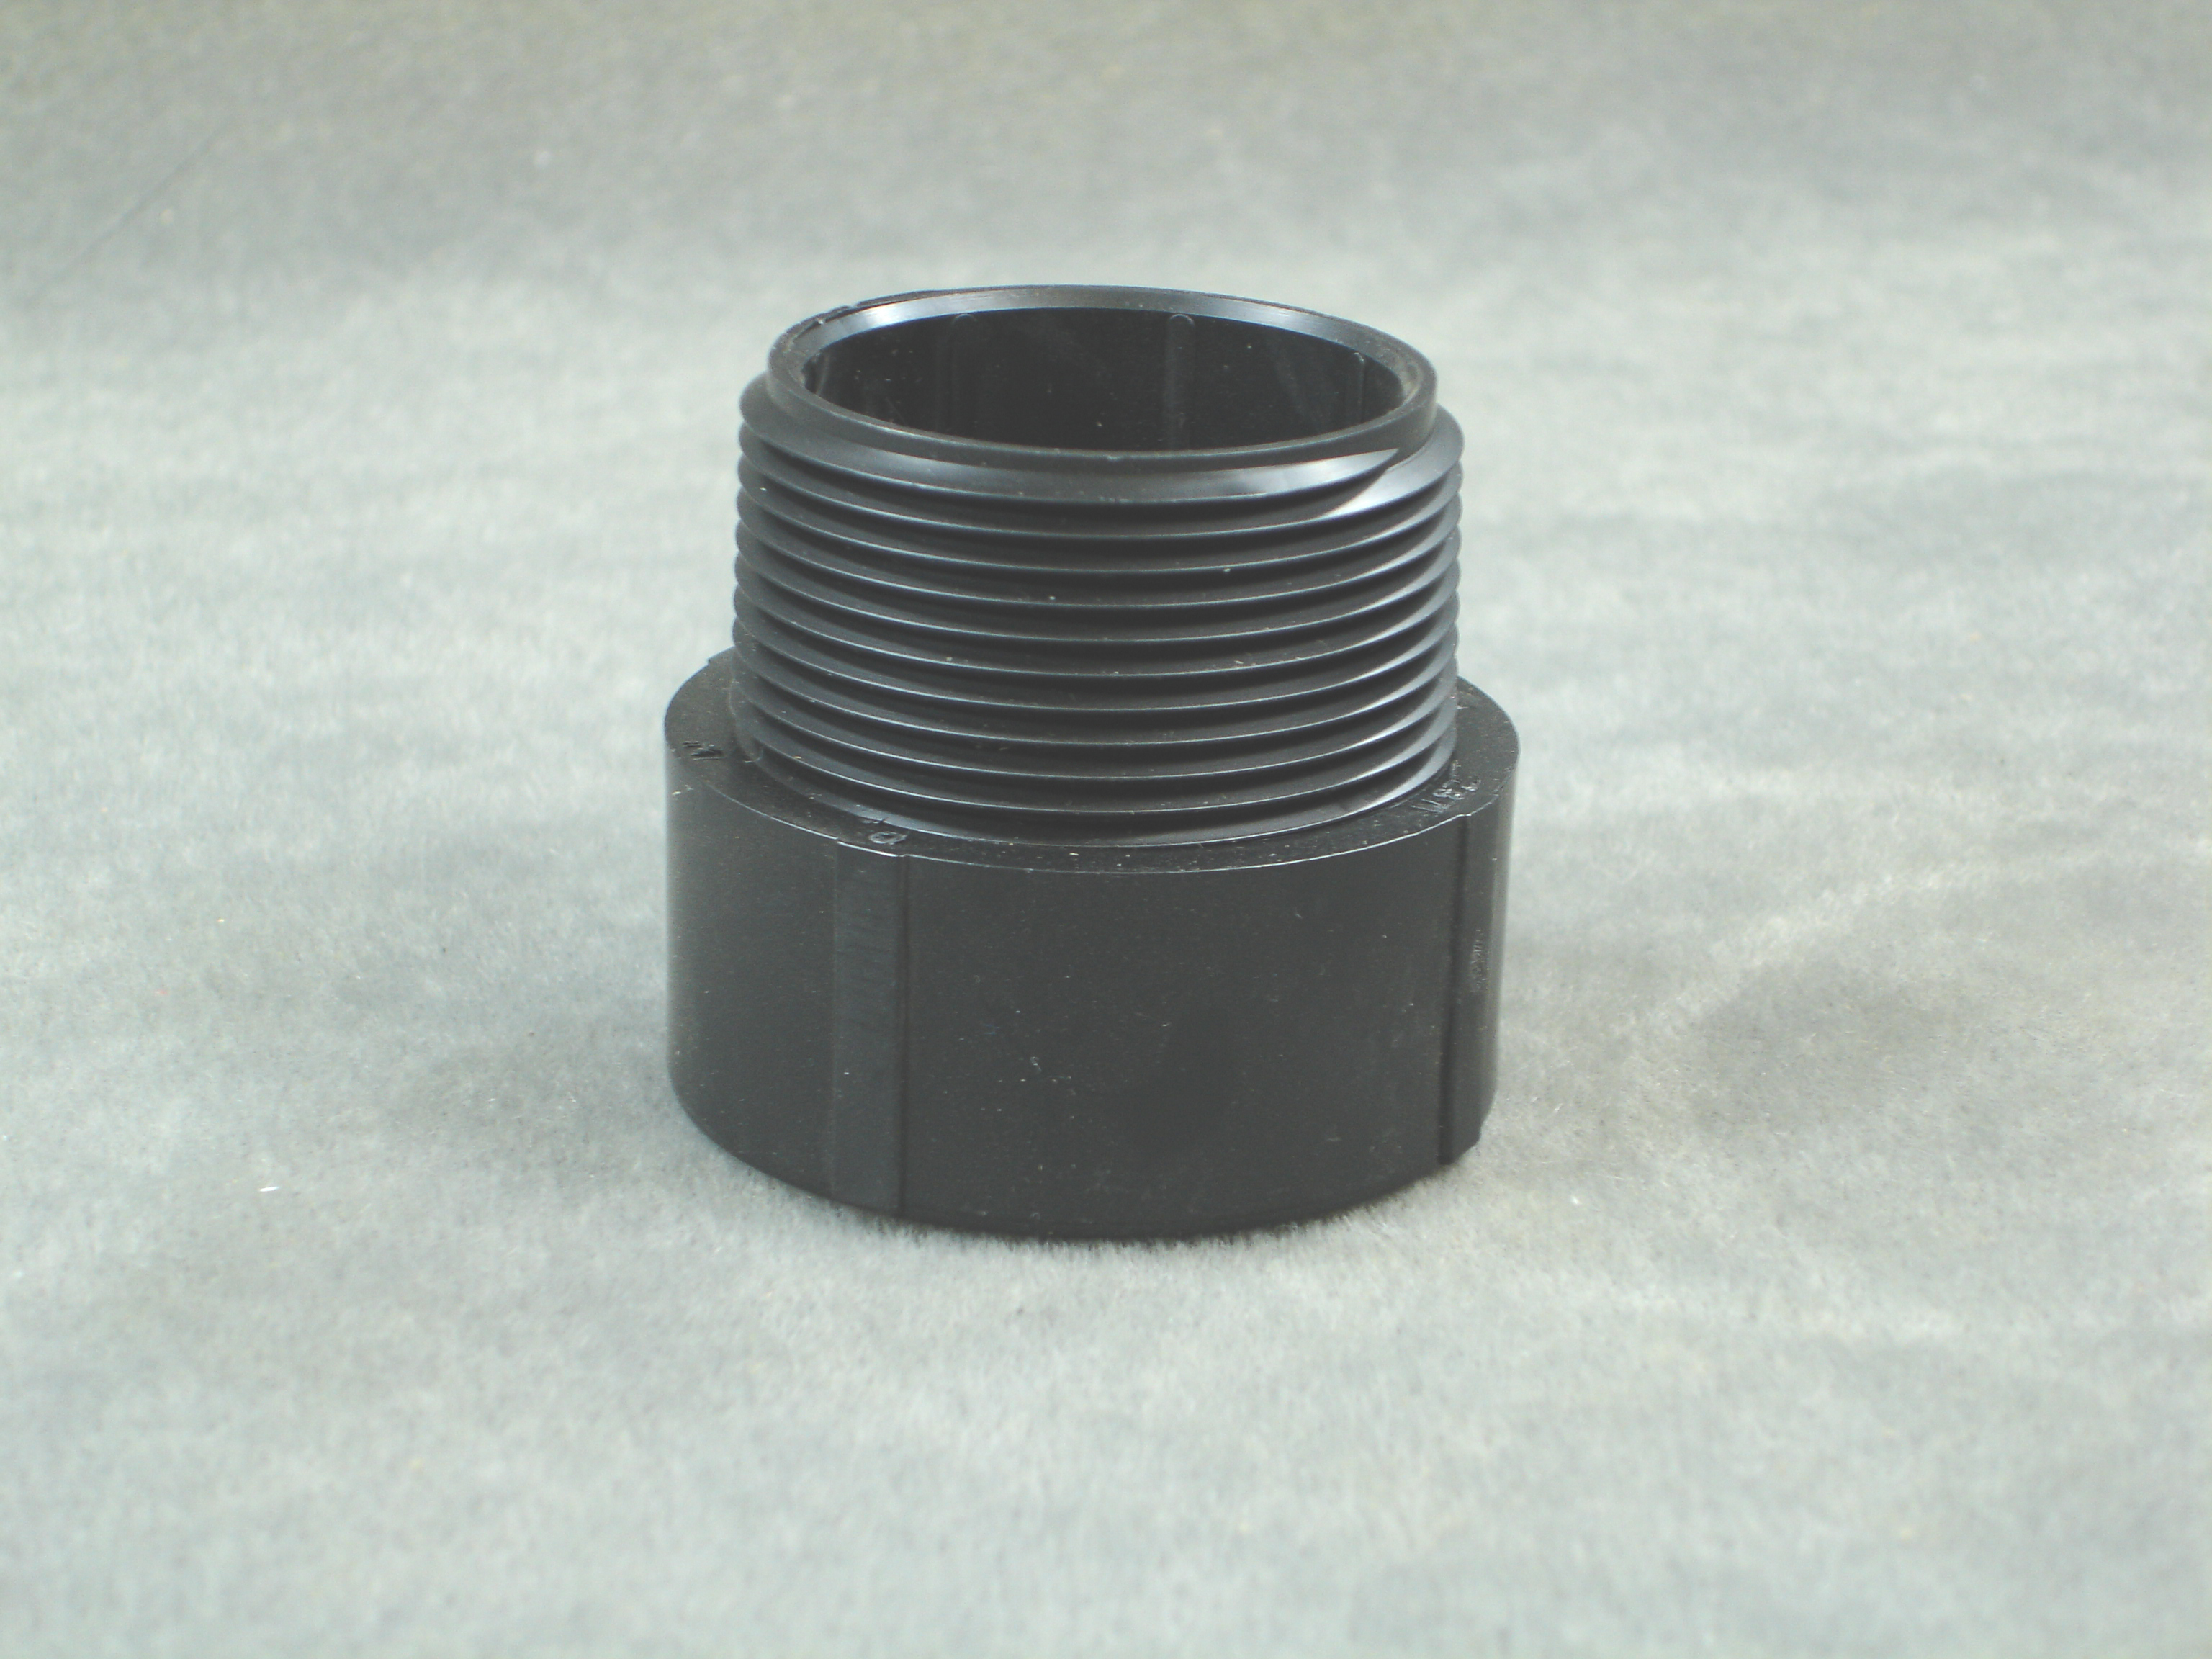 Sch abs male adapter royal durham supply